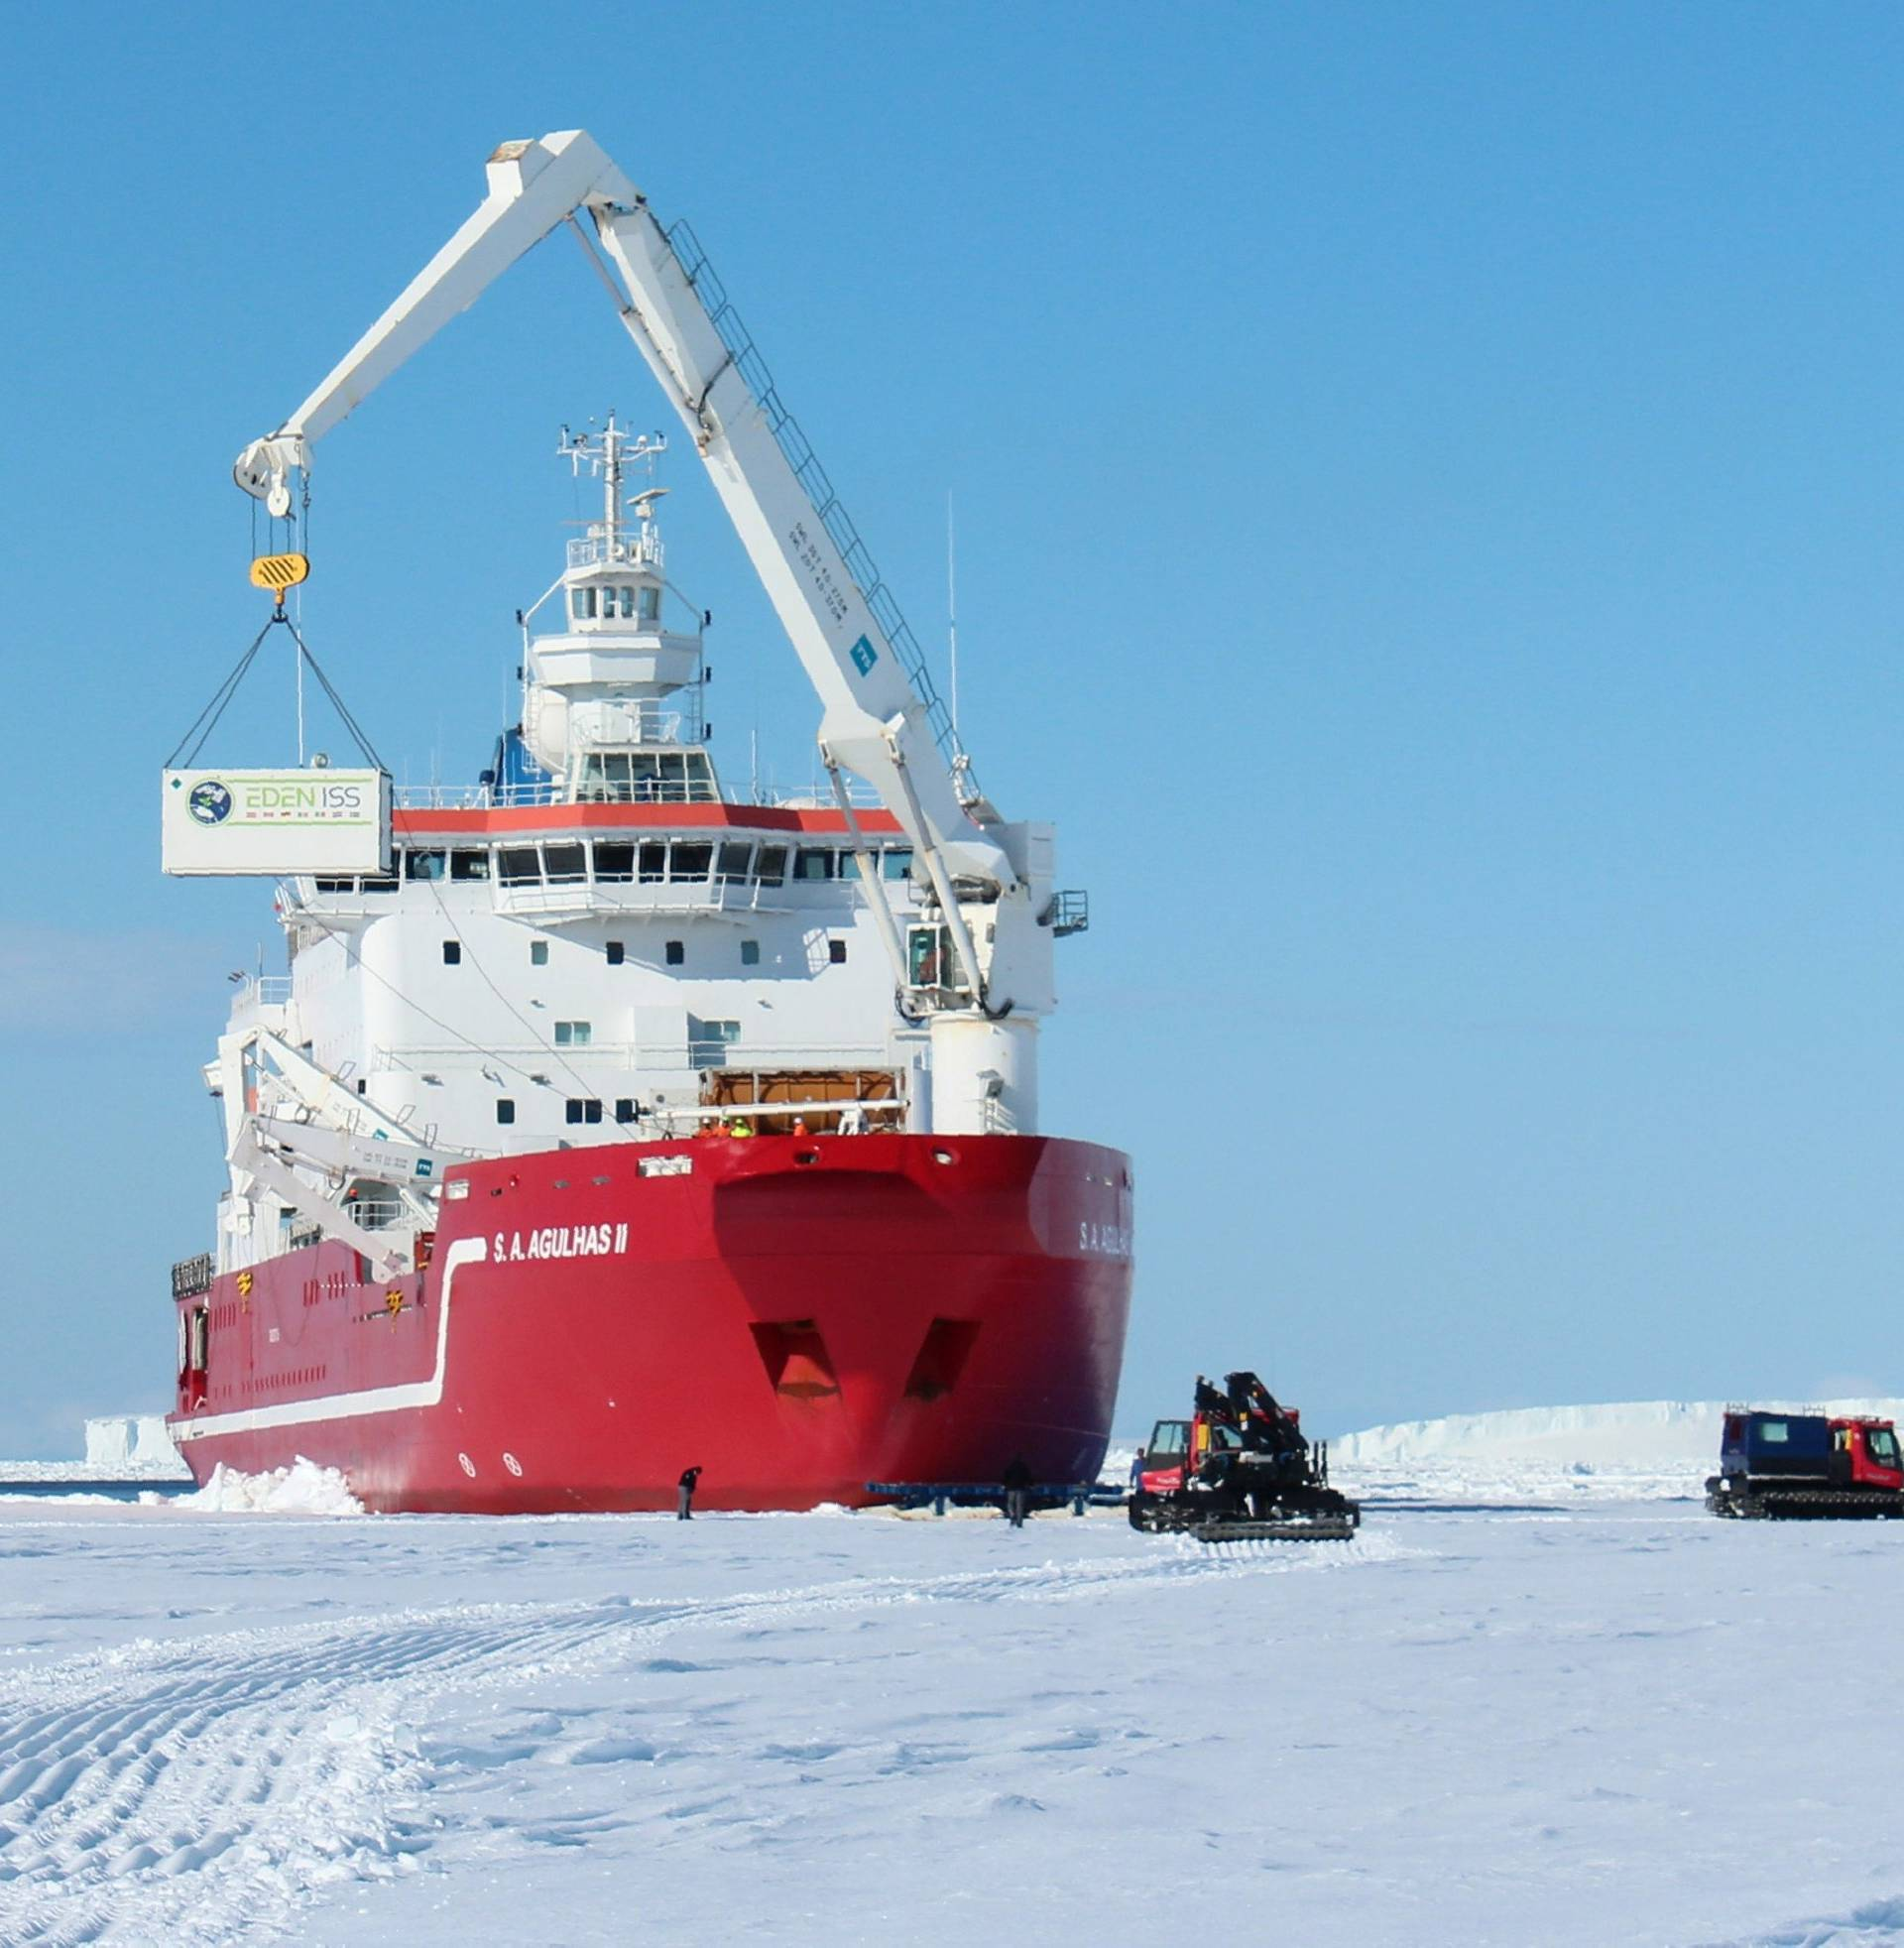 The EDEN ISS greenhouse is unloaded from the Agulhas II in the Antarctic